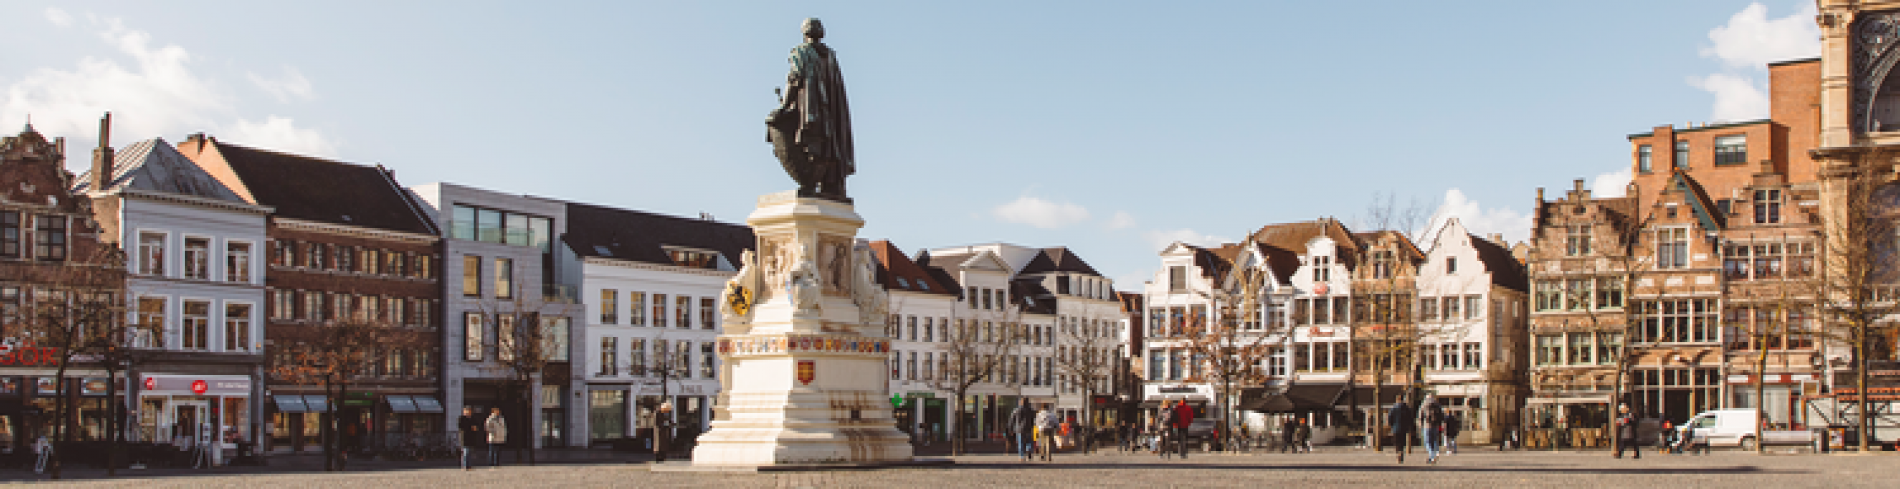 Explore the historical centre of Ghent